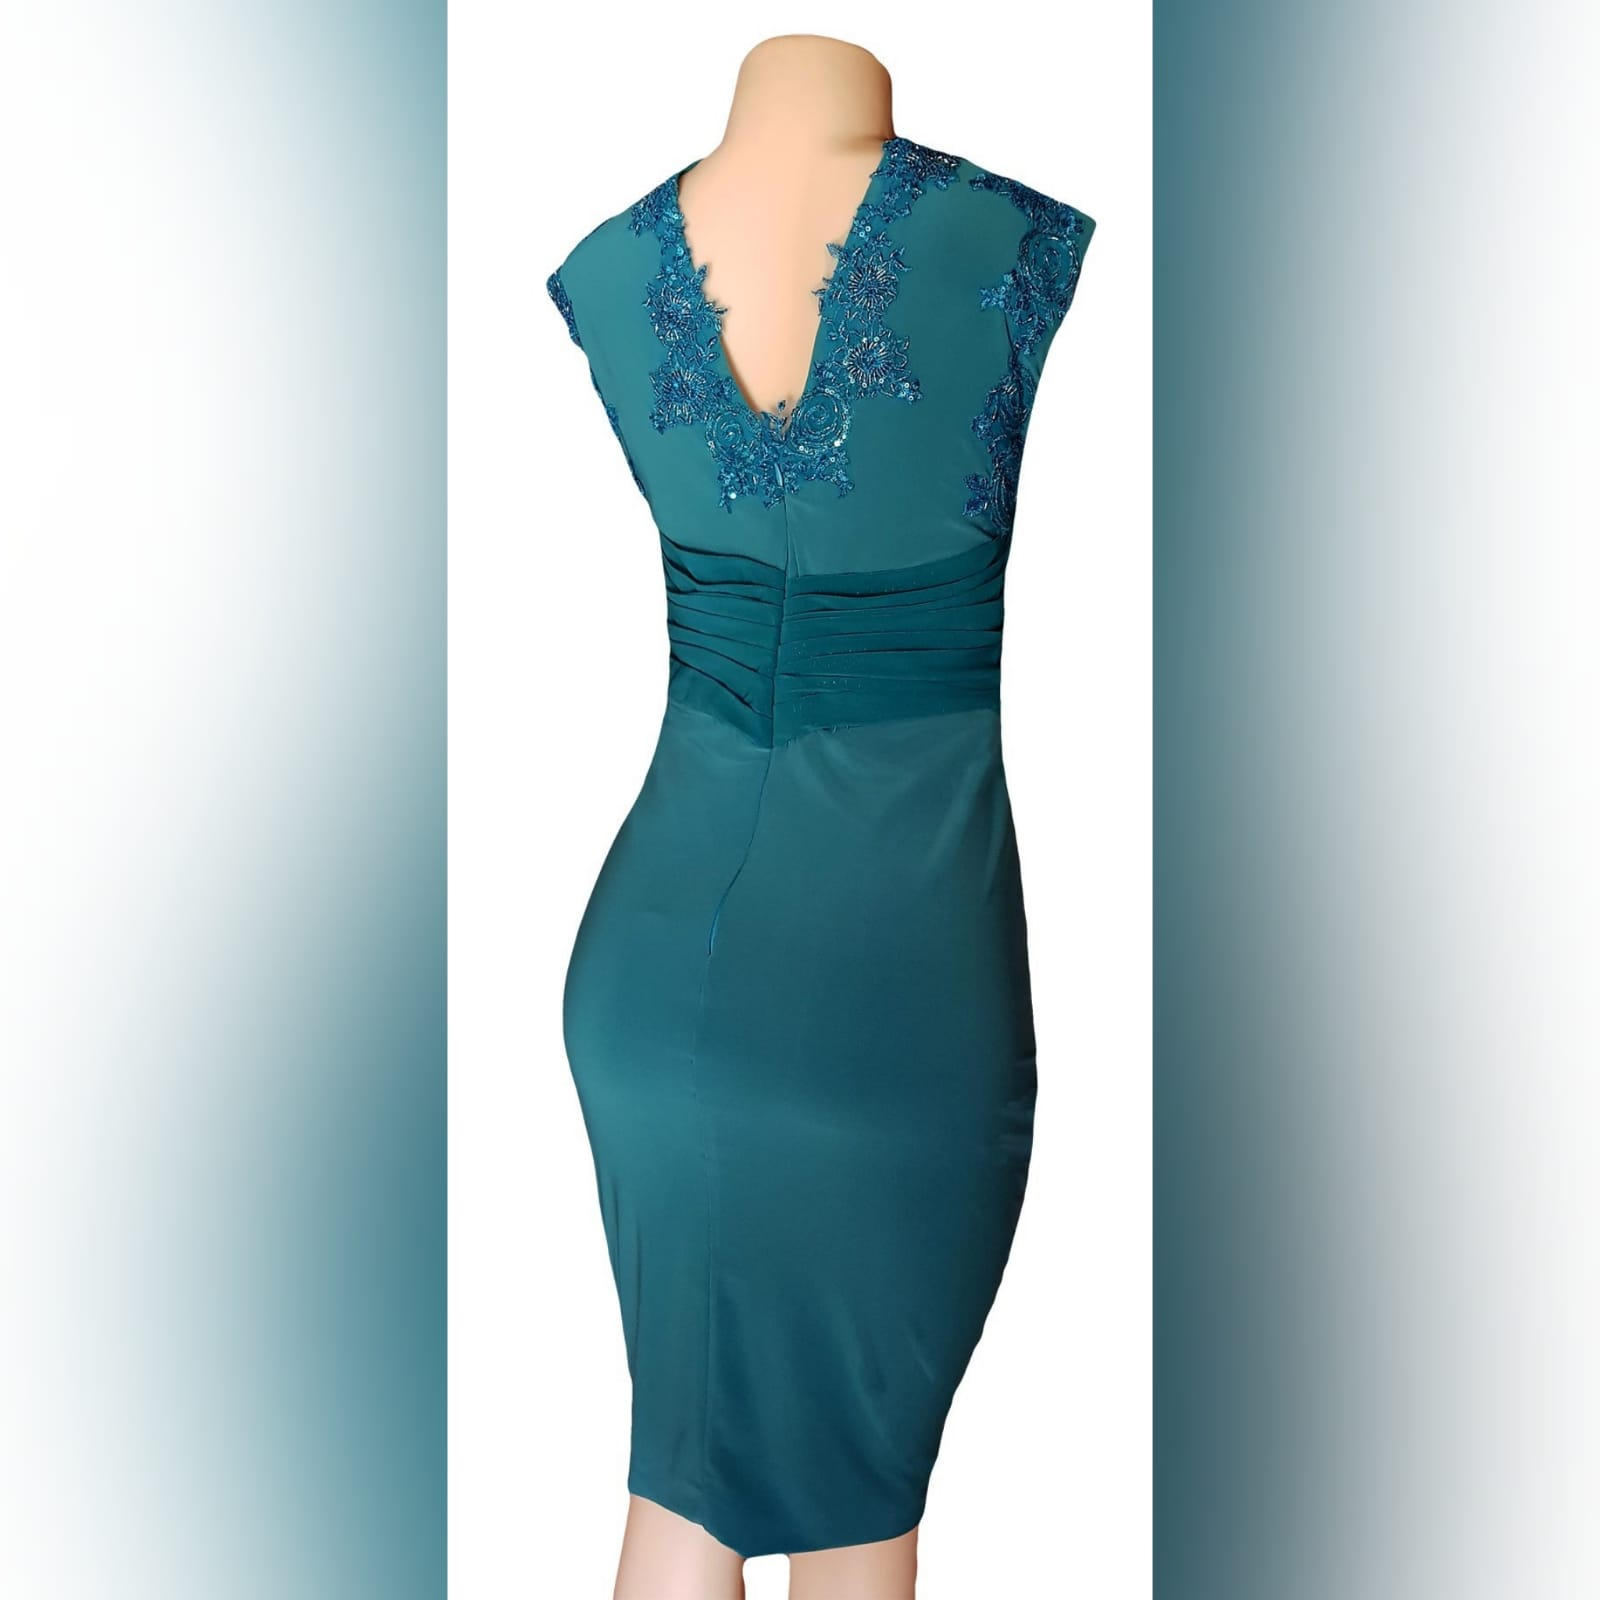 Pencil fit turquoise knee length formal dress 8 a pencil fit turquoise knee length formal dress, created for a wedding for mother of bride. This simple elegant design has a crossed v neckline detailed with beaded lace. A ruched belt with ends on the side over the dress.